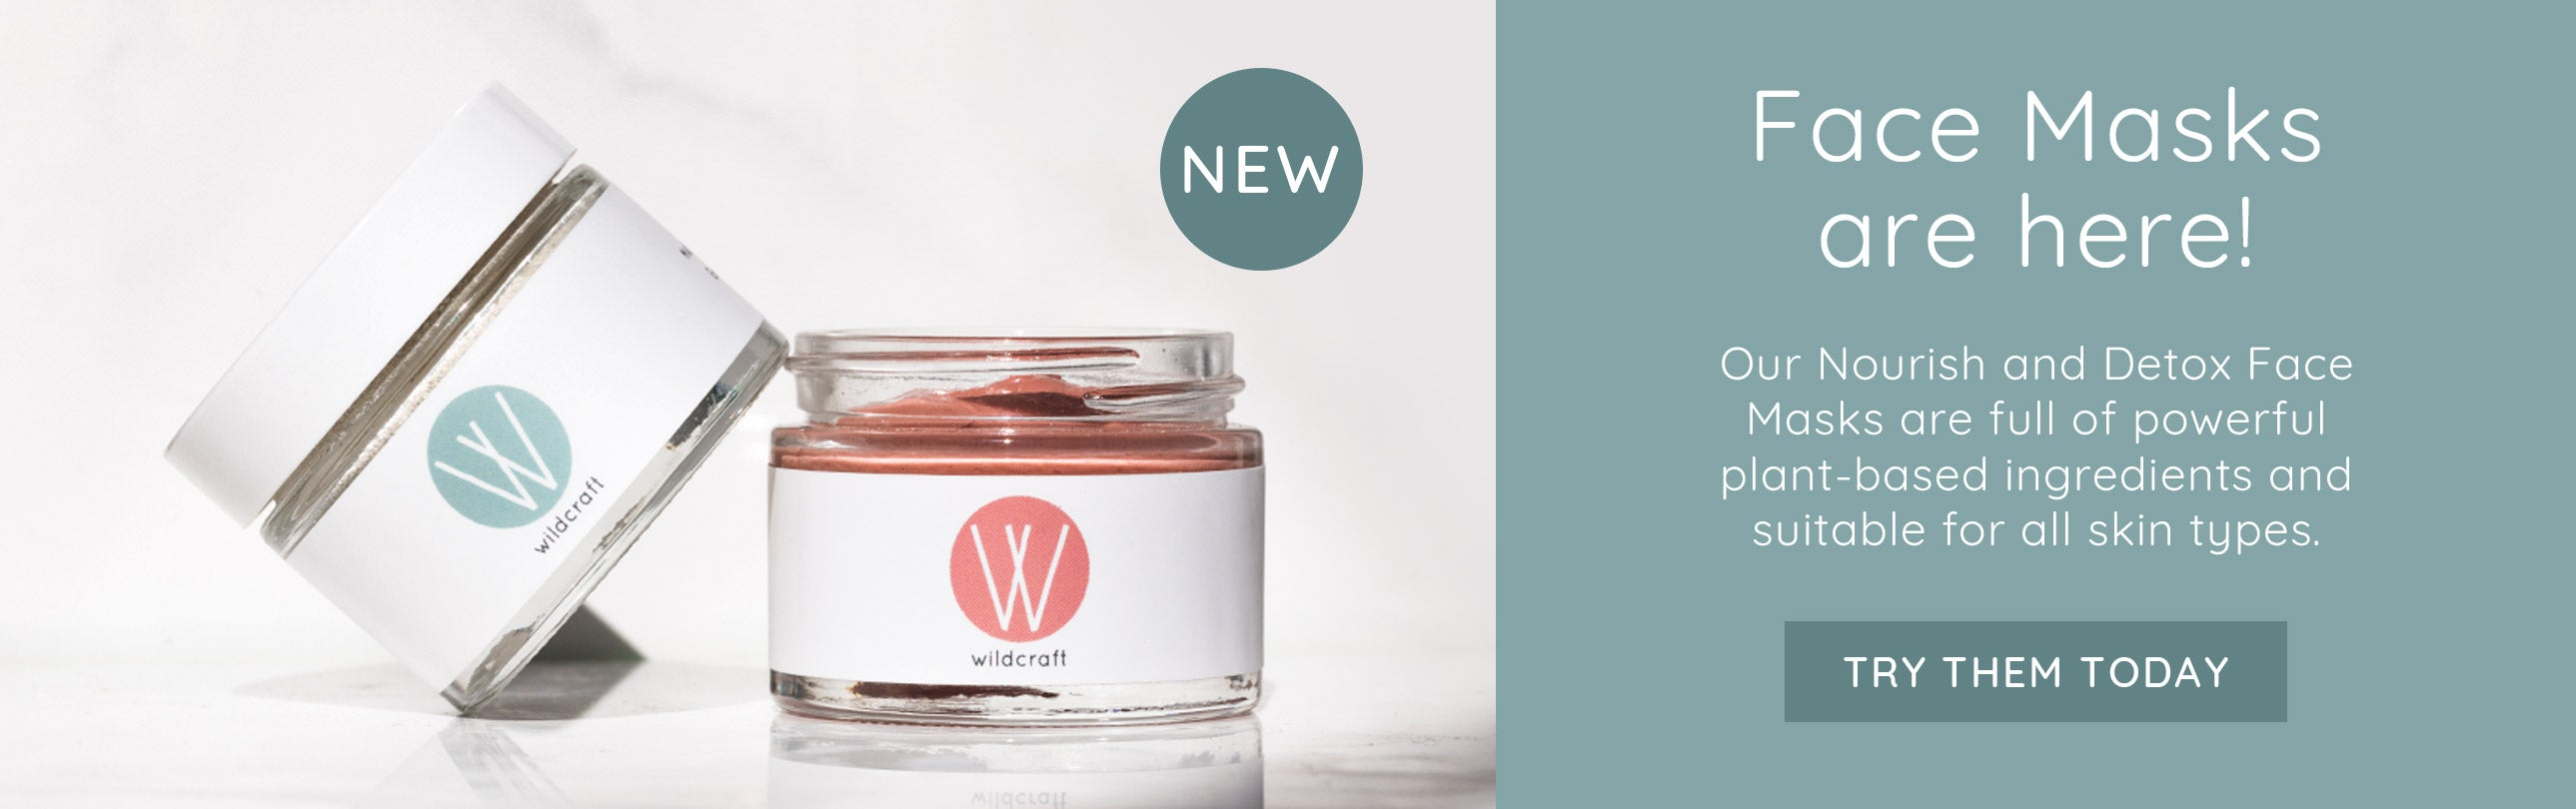 Try our new Face Masks today!